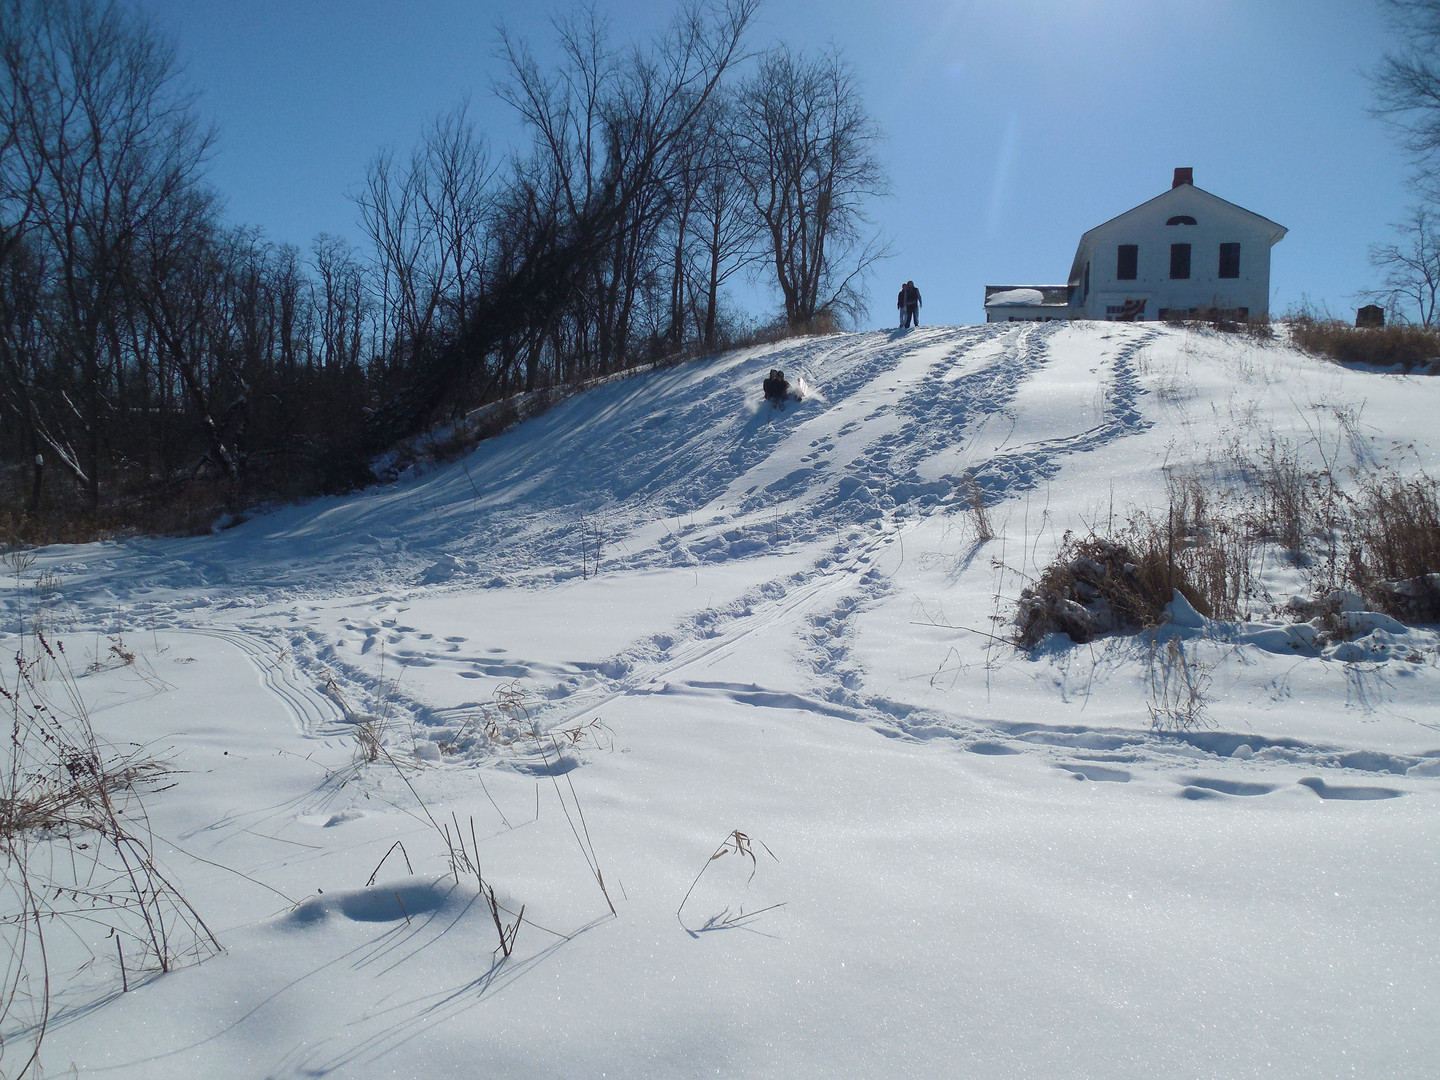 Sledding at Suicide Hill